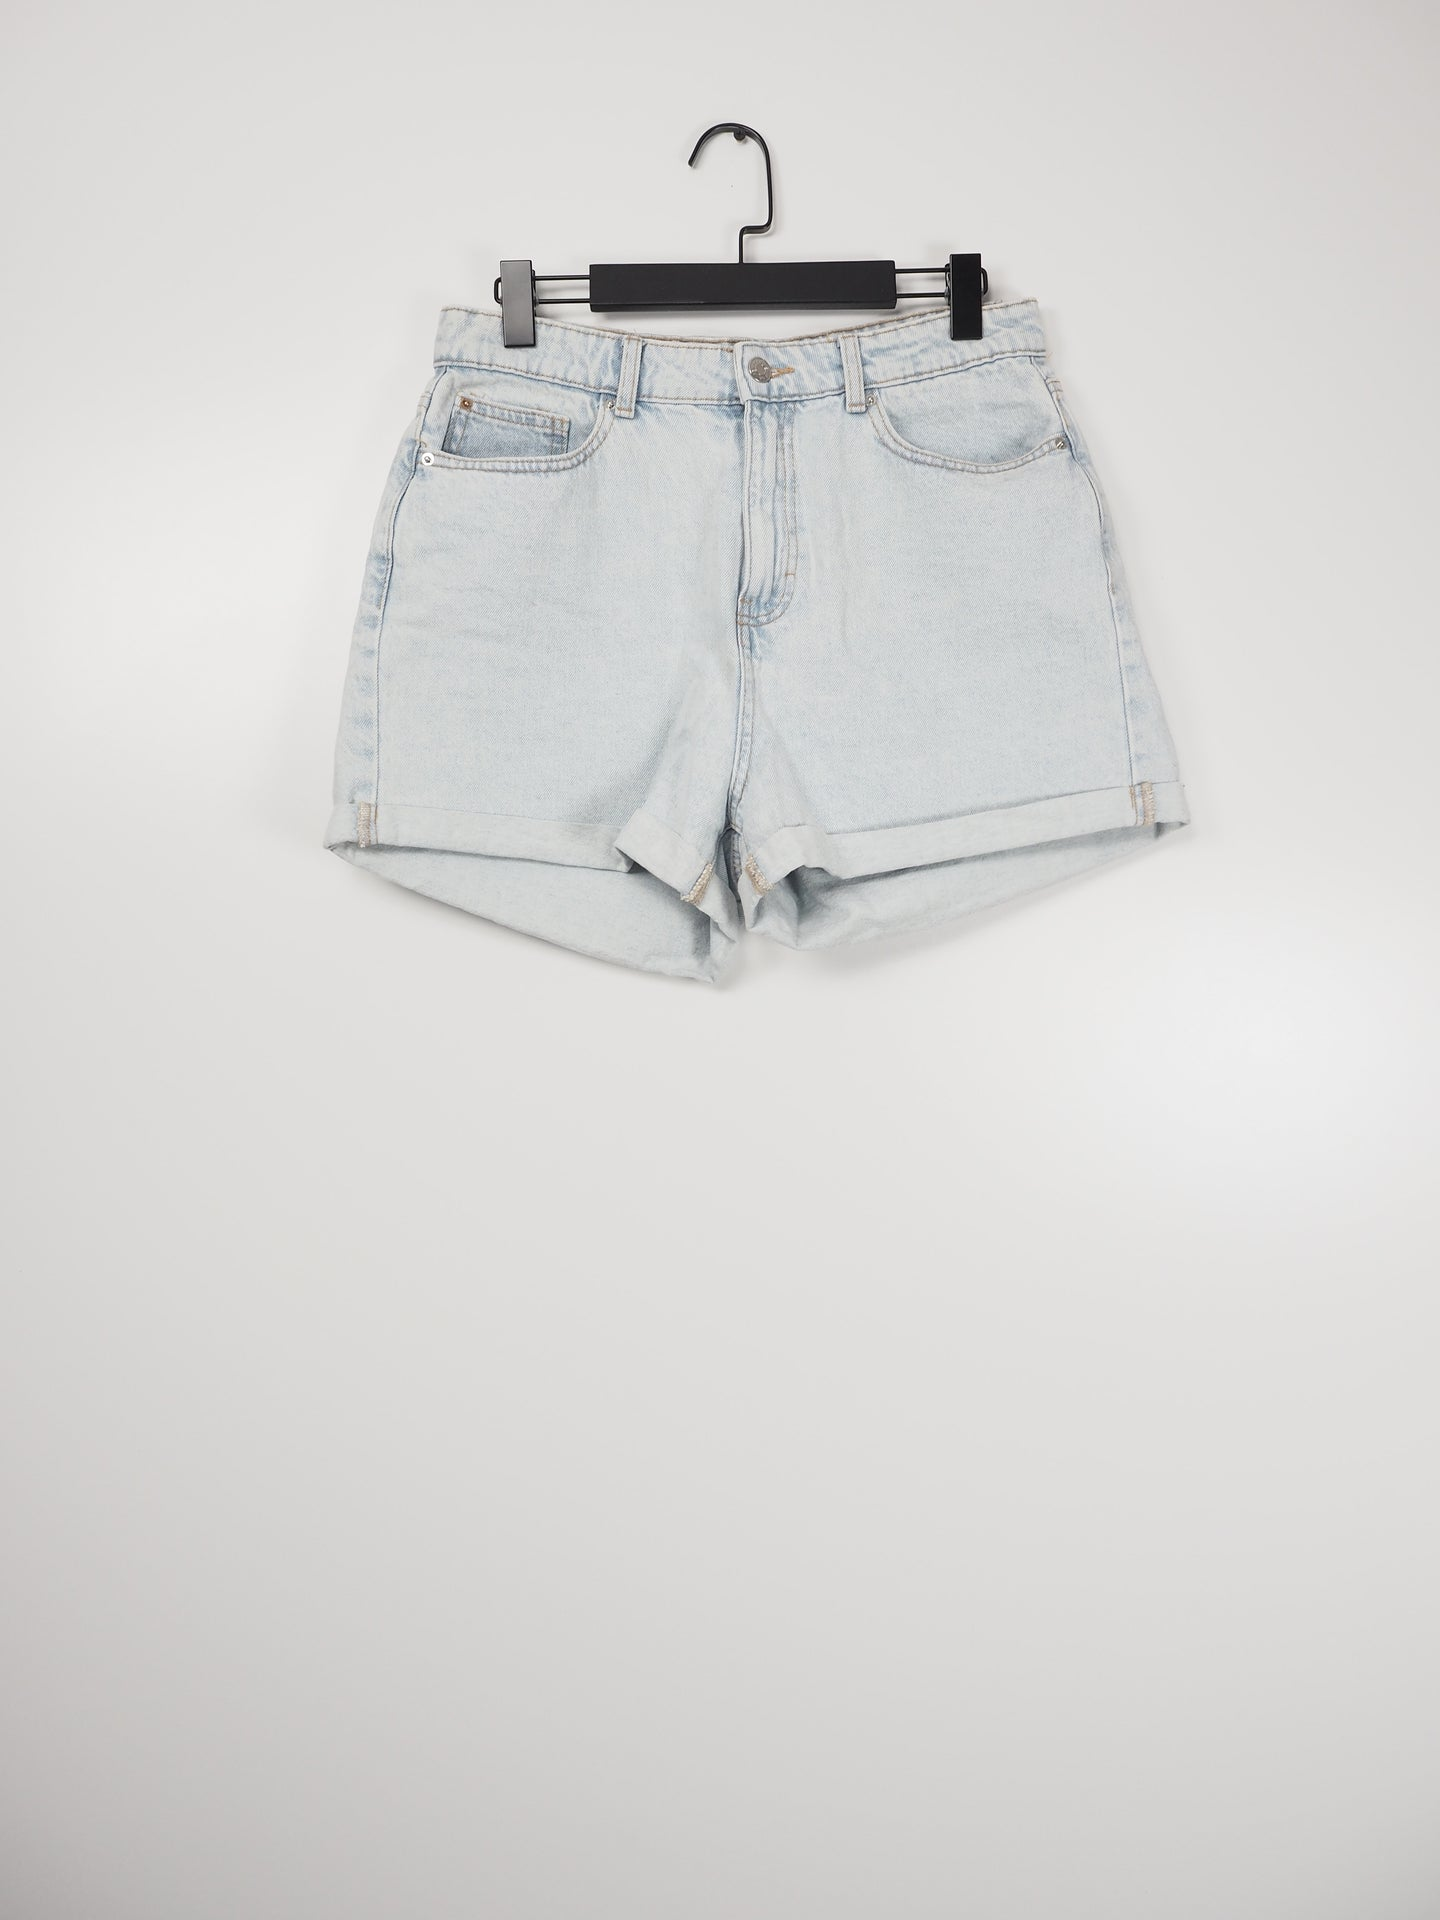 Light shorts (Primark)